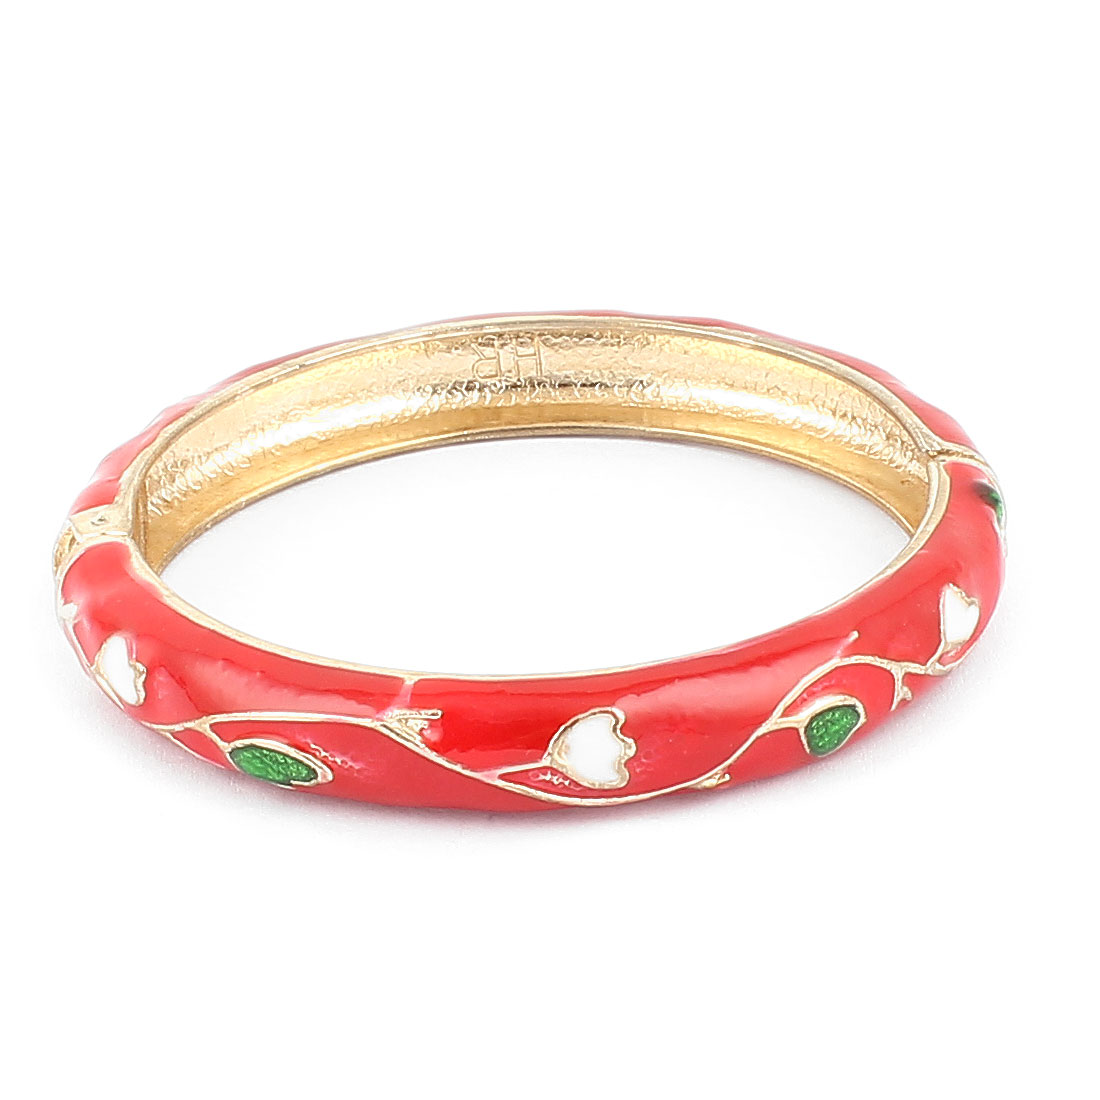 Woman Lady Spring Hinged Round Cuff Floral Carved Enamel Bracelet Bangle Red